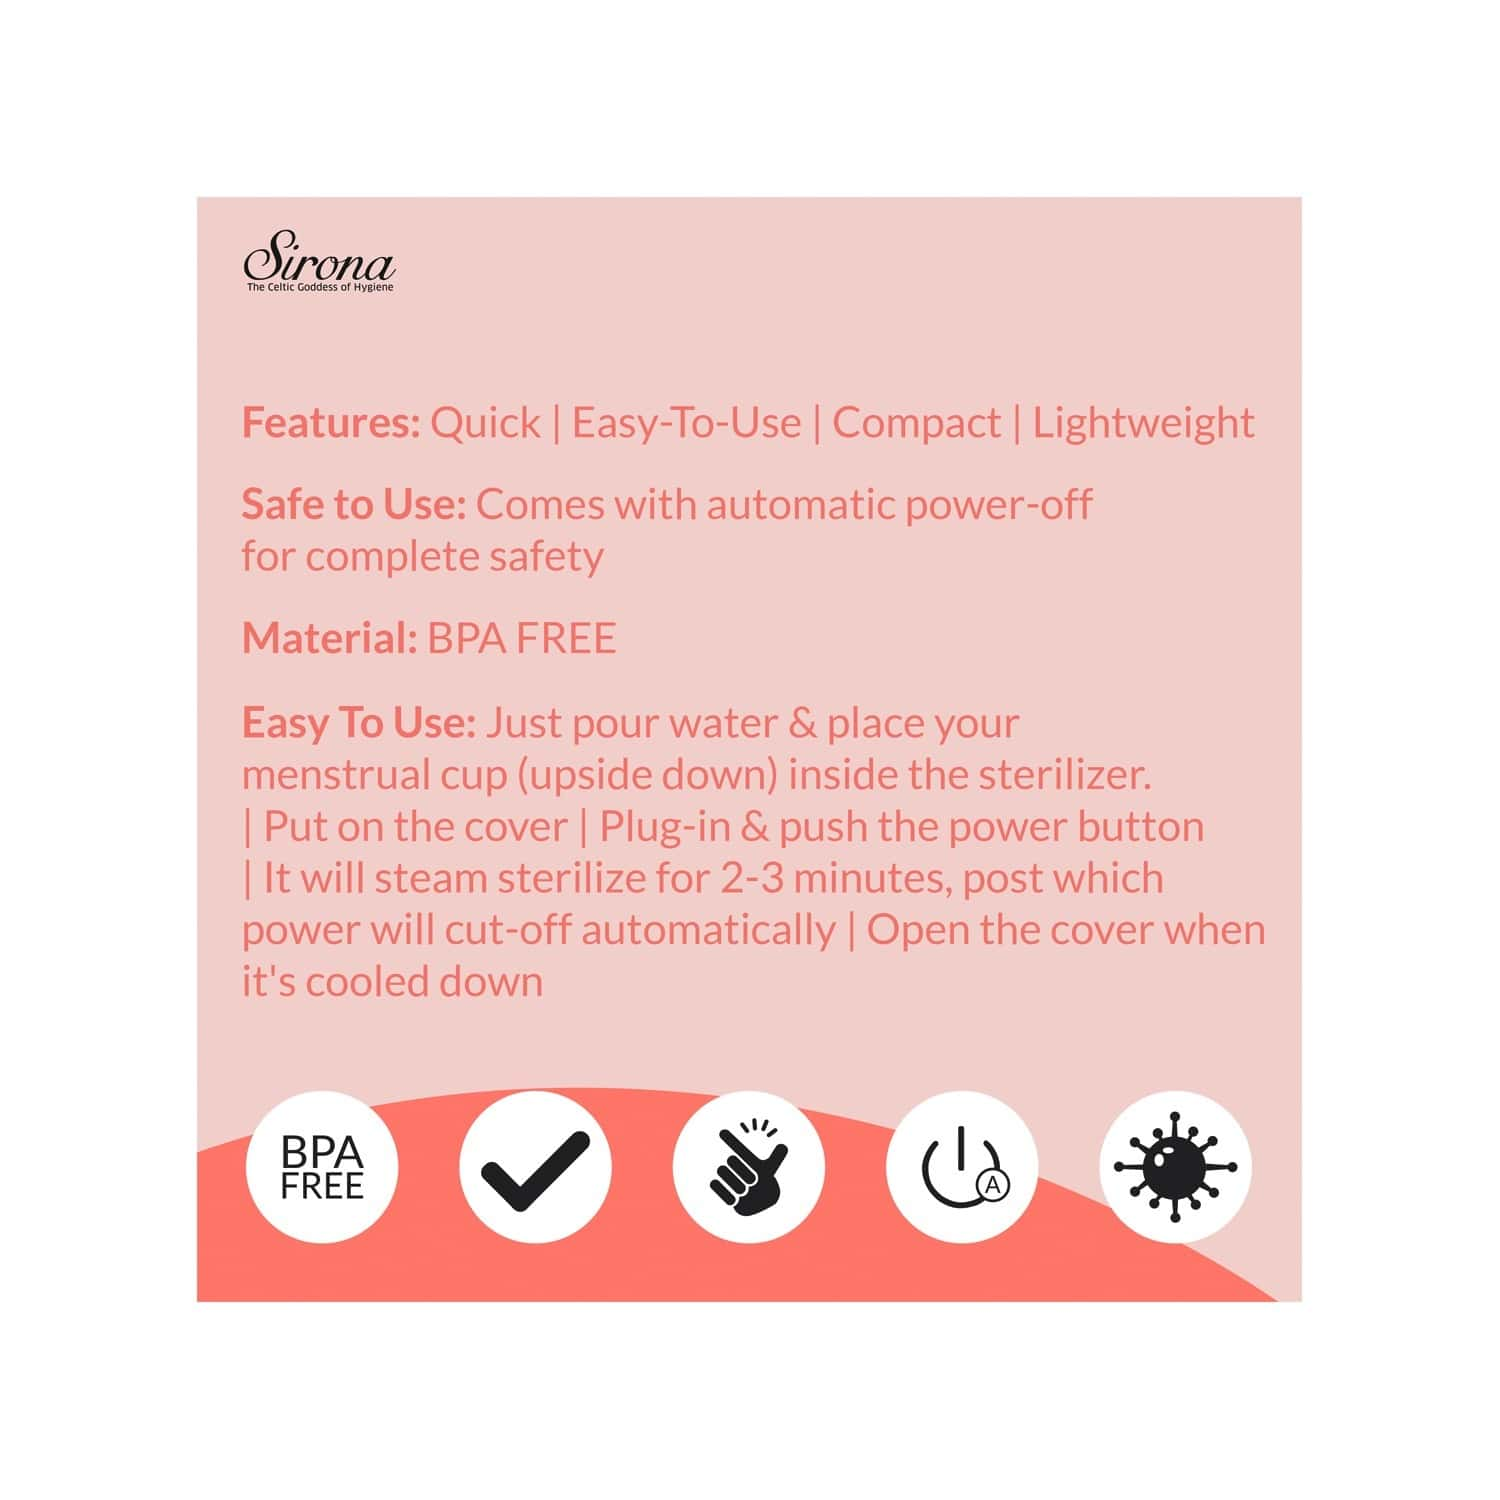 Sirona Menstrual Cup Sterilizer - Clean Your Period Cup Effortlessly - Kills 99% Of Germs In 3 Minutes With Steam - 1 Unit